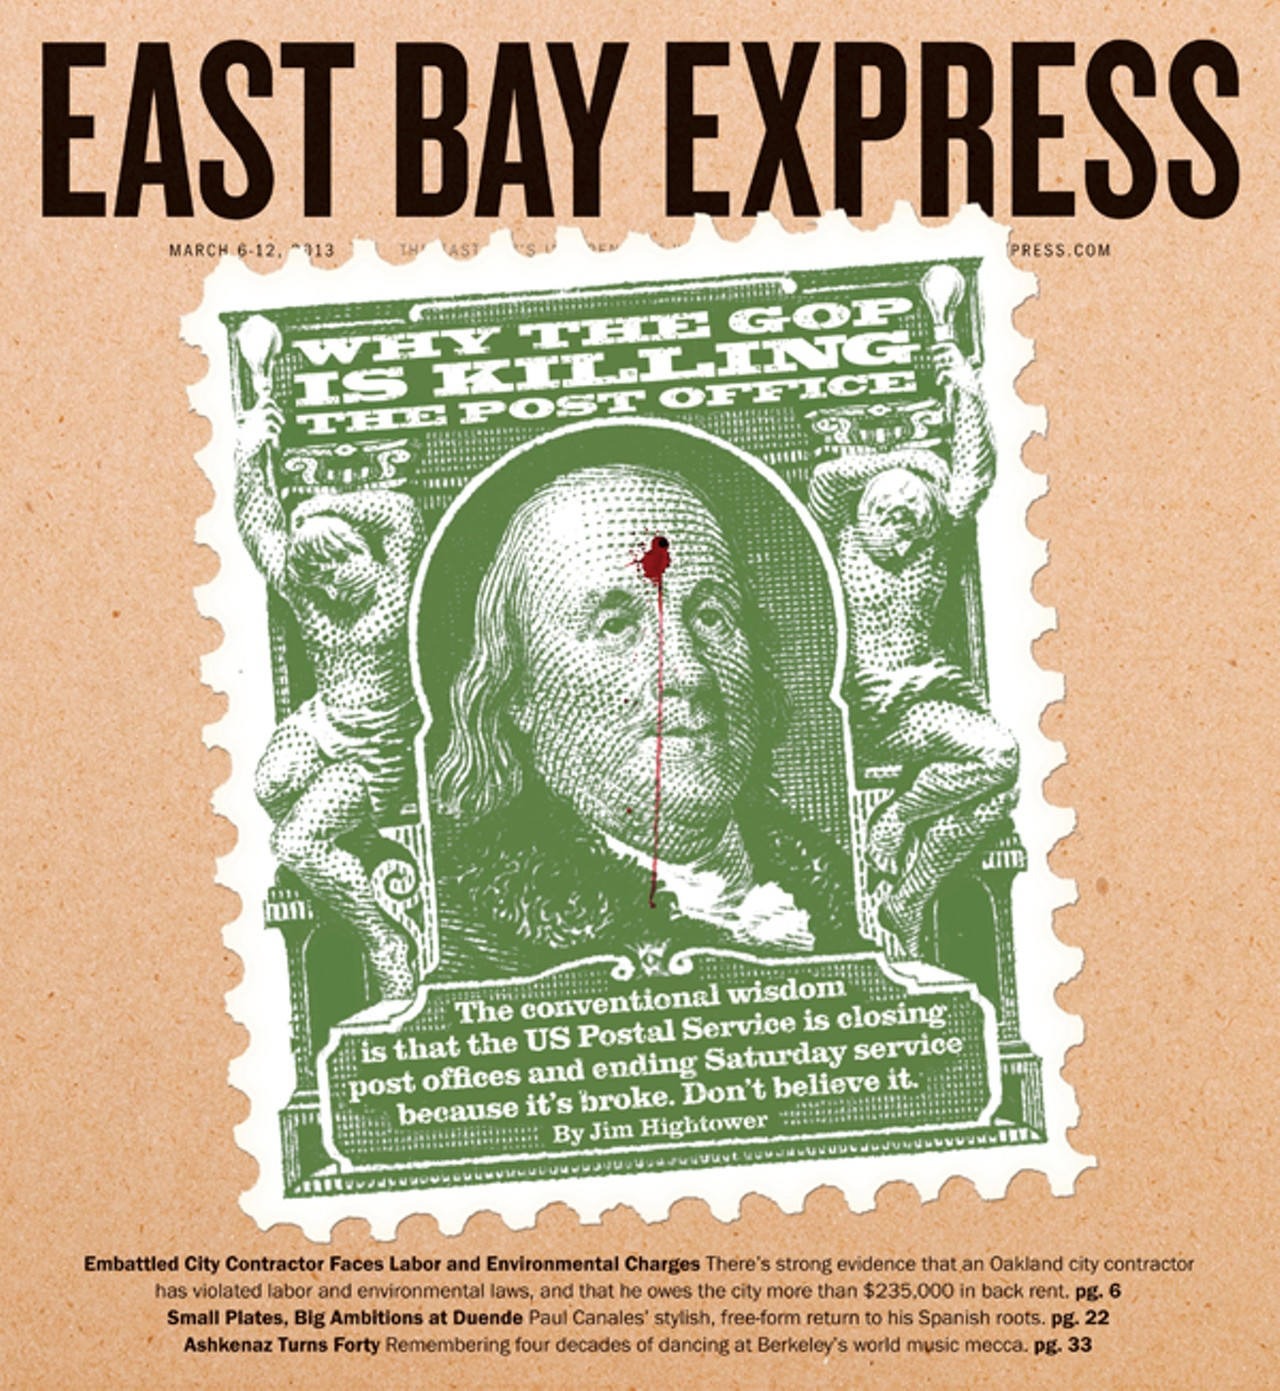 Letters For The Week Of March 20 2013 East Bay Express